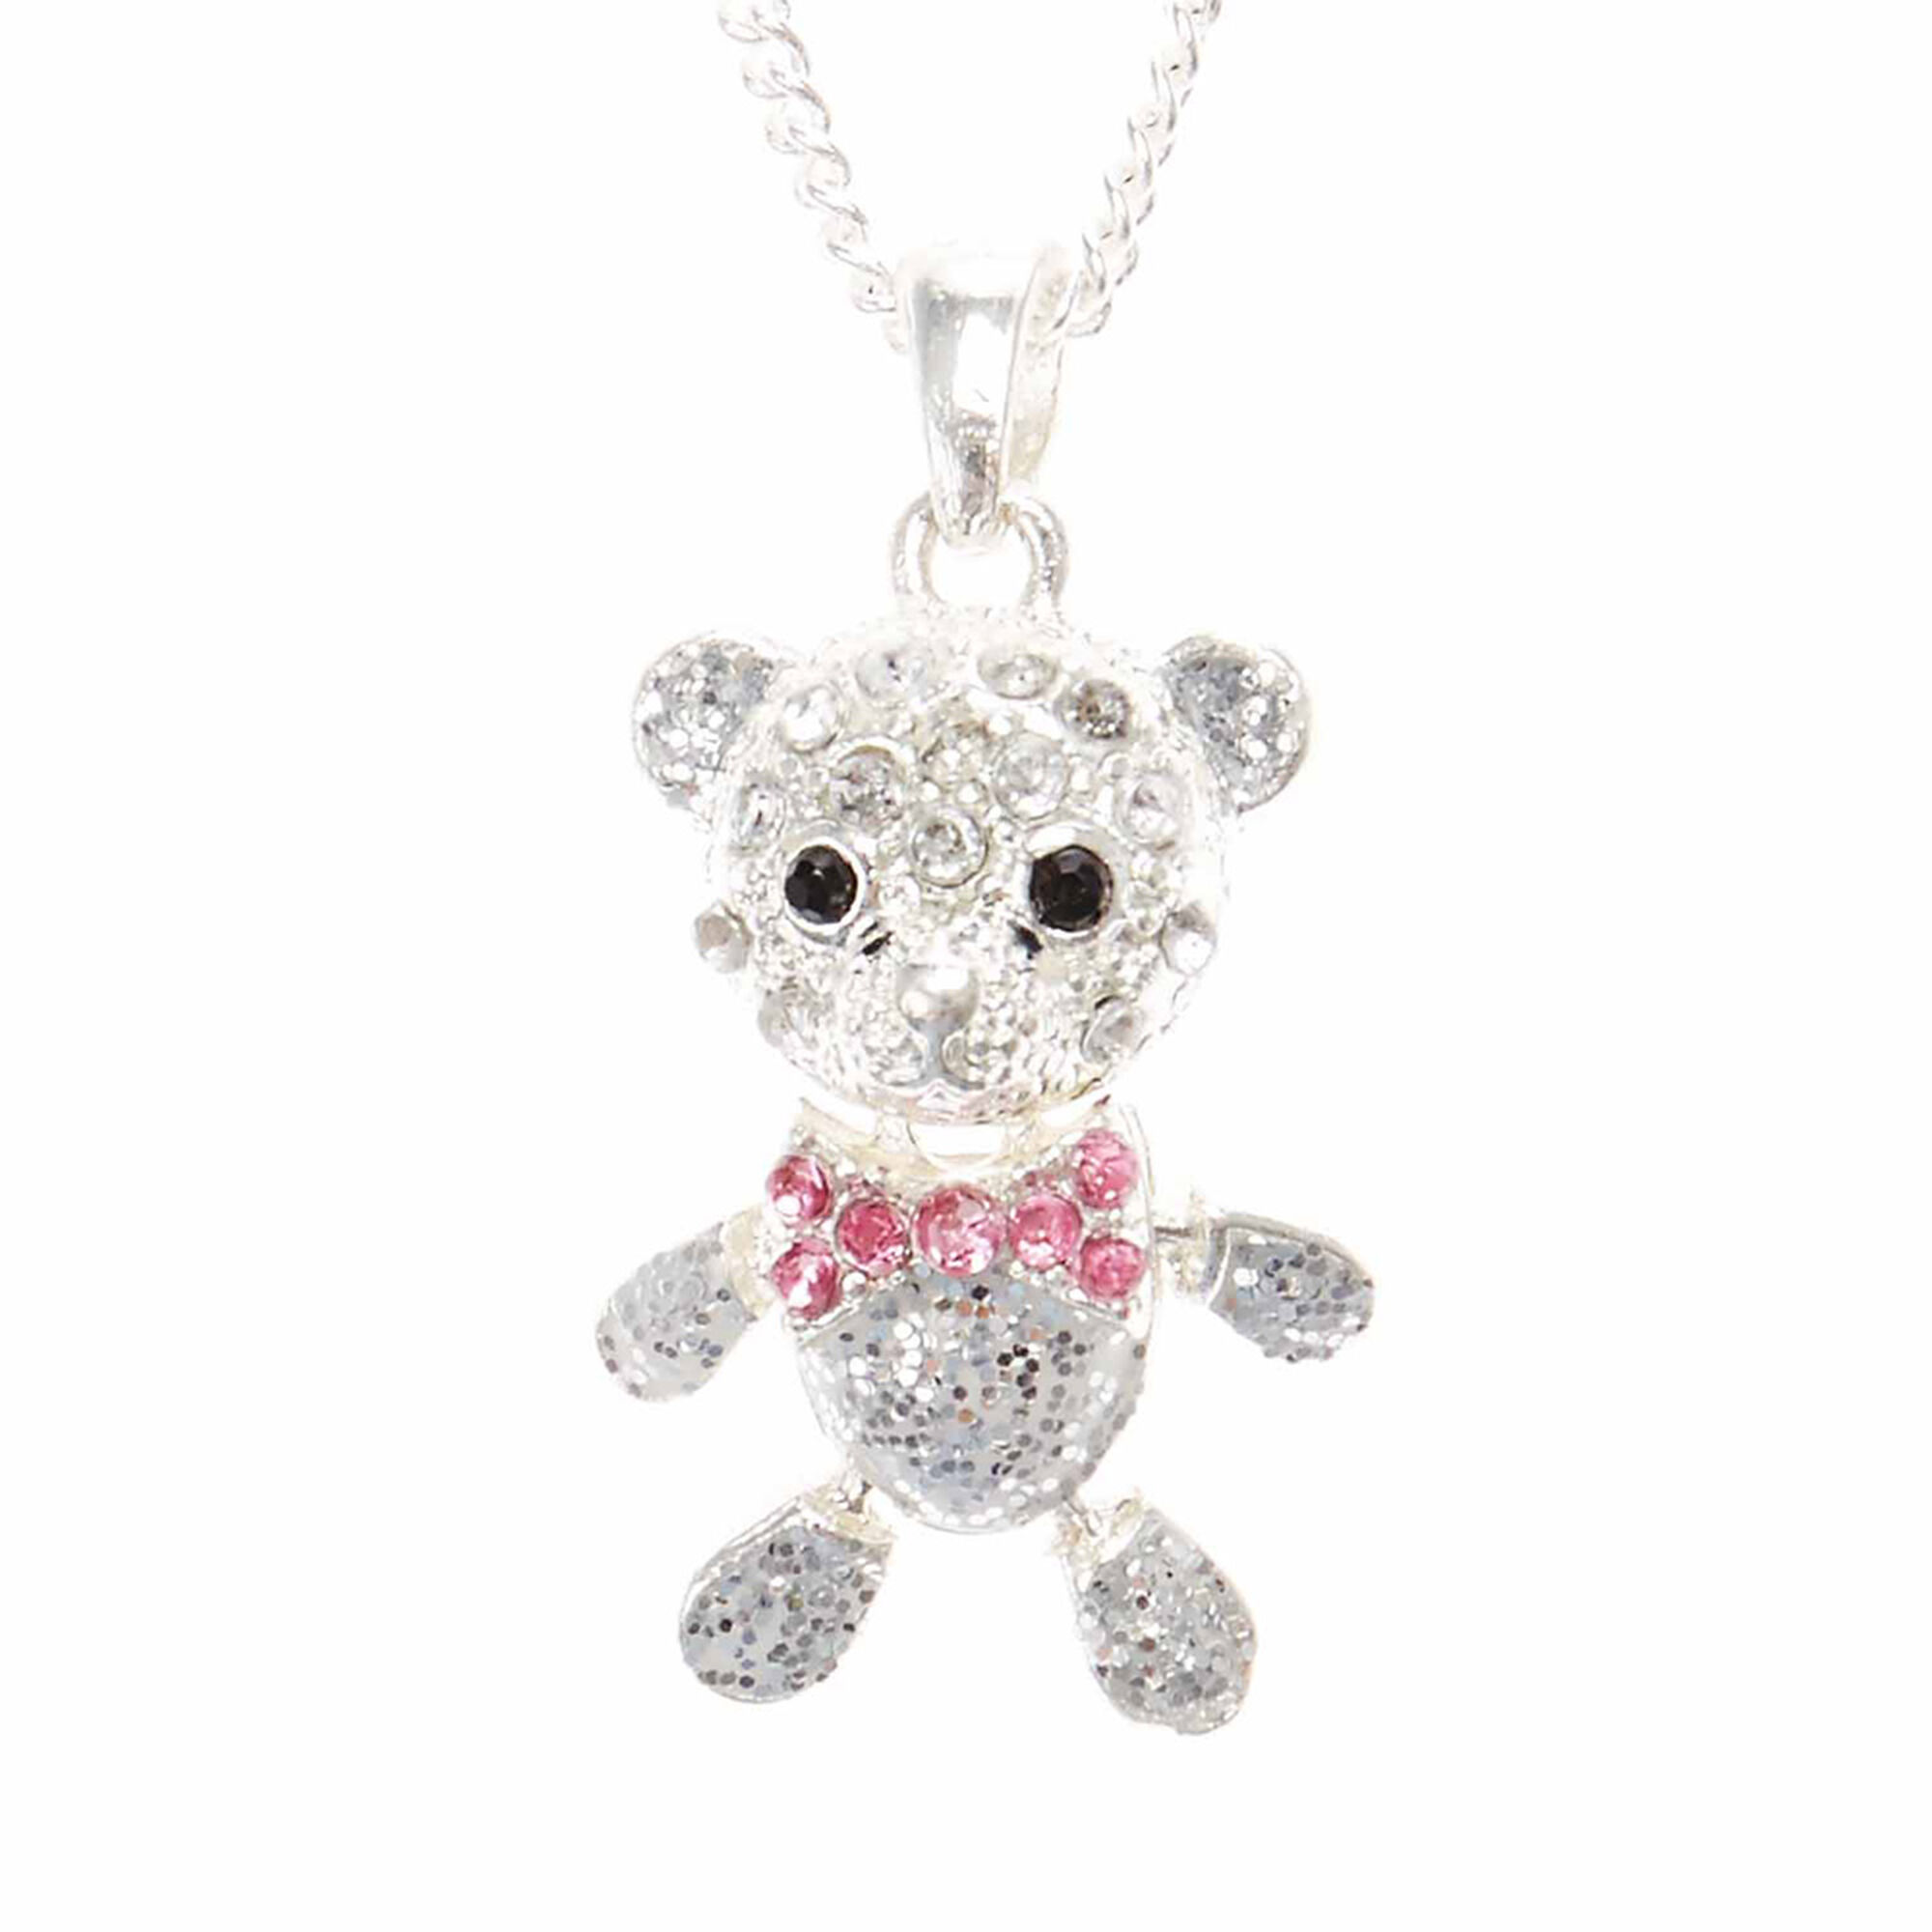 bear id for at gold pendant as diamond drop jewelry new sale necklace teddy necklaces j pomellato condition southampton in